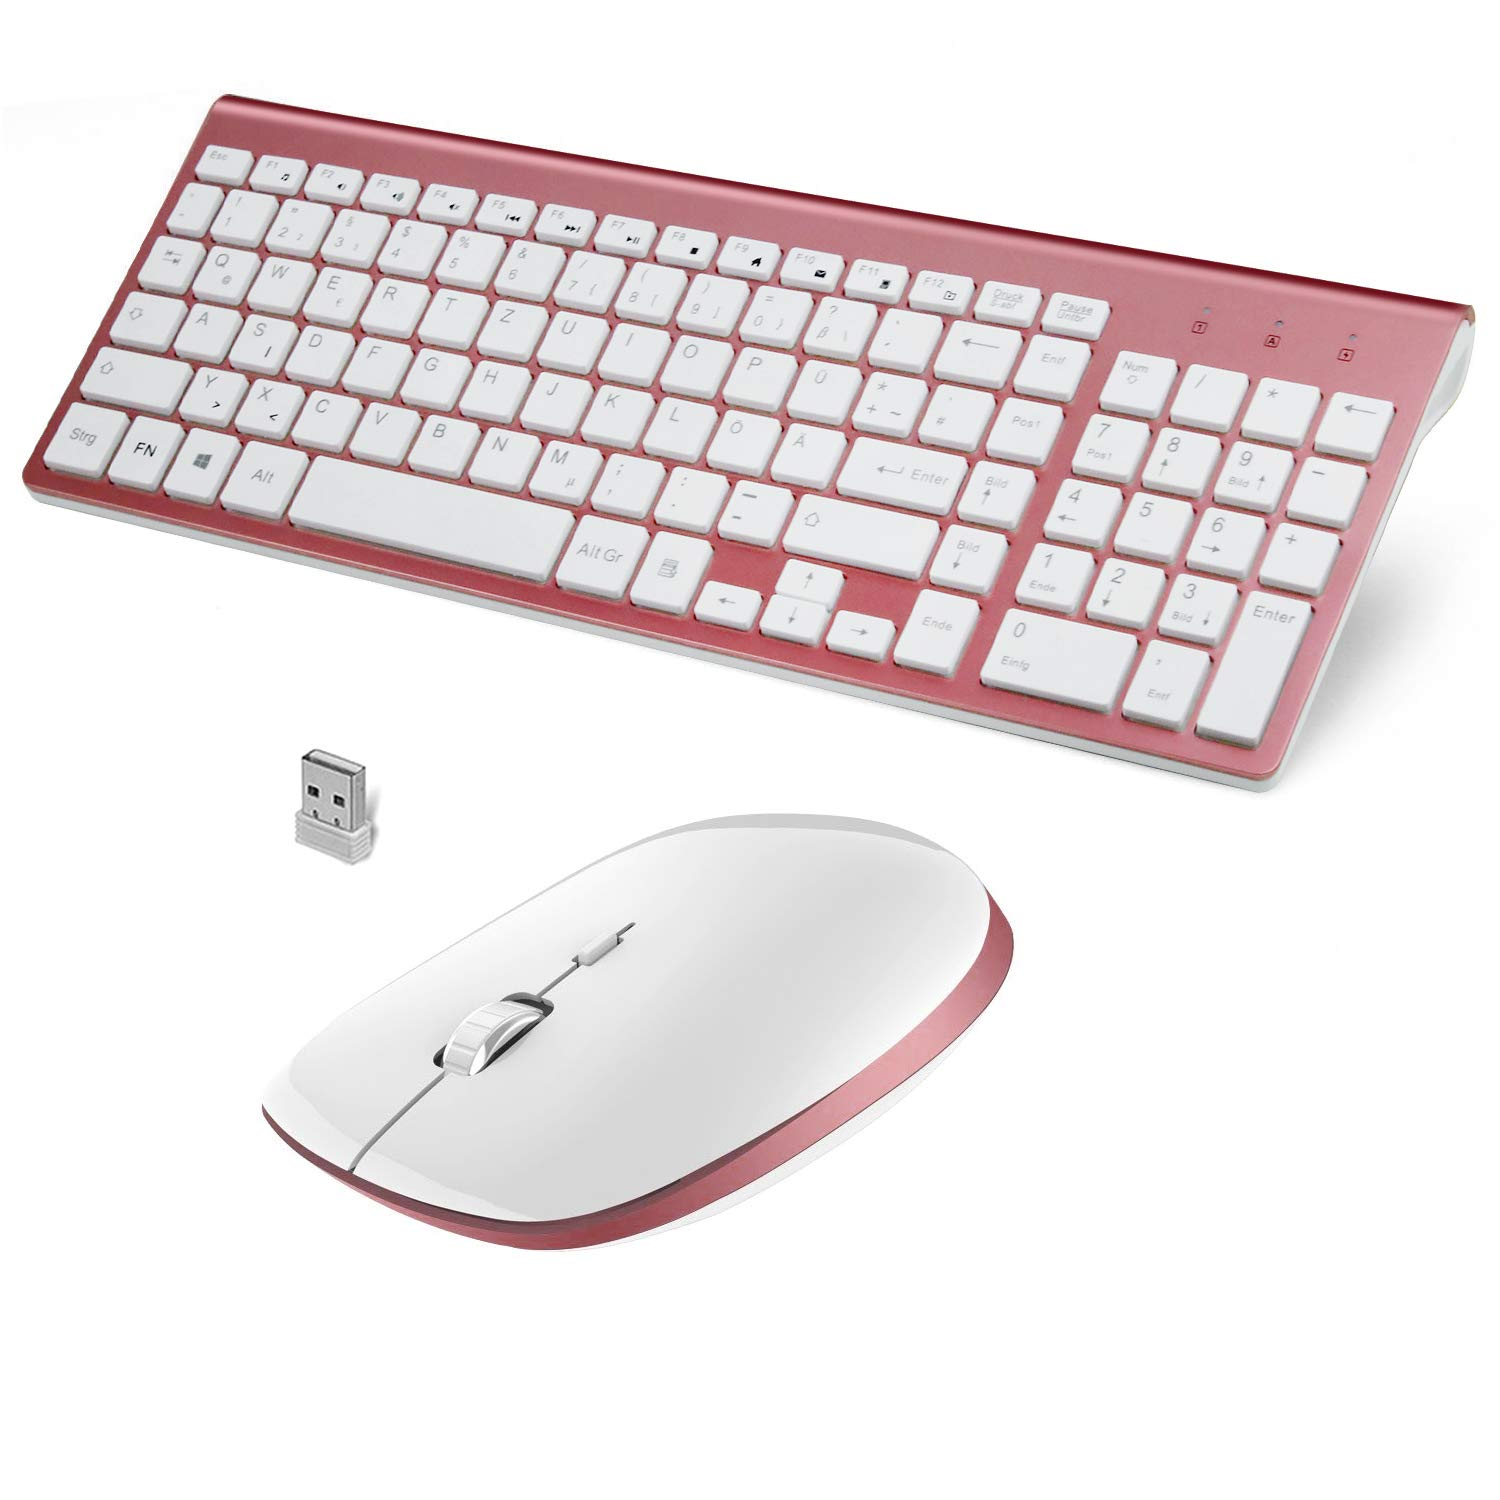 FENIFOX QWERTZ Tastatur Maus Set Kabellos Wireless Amazon puter & Zubehör